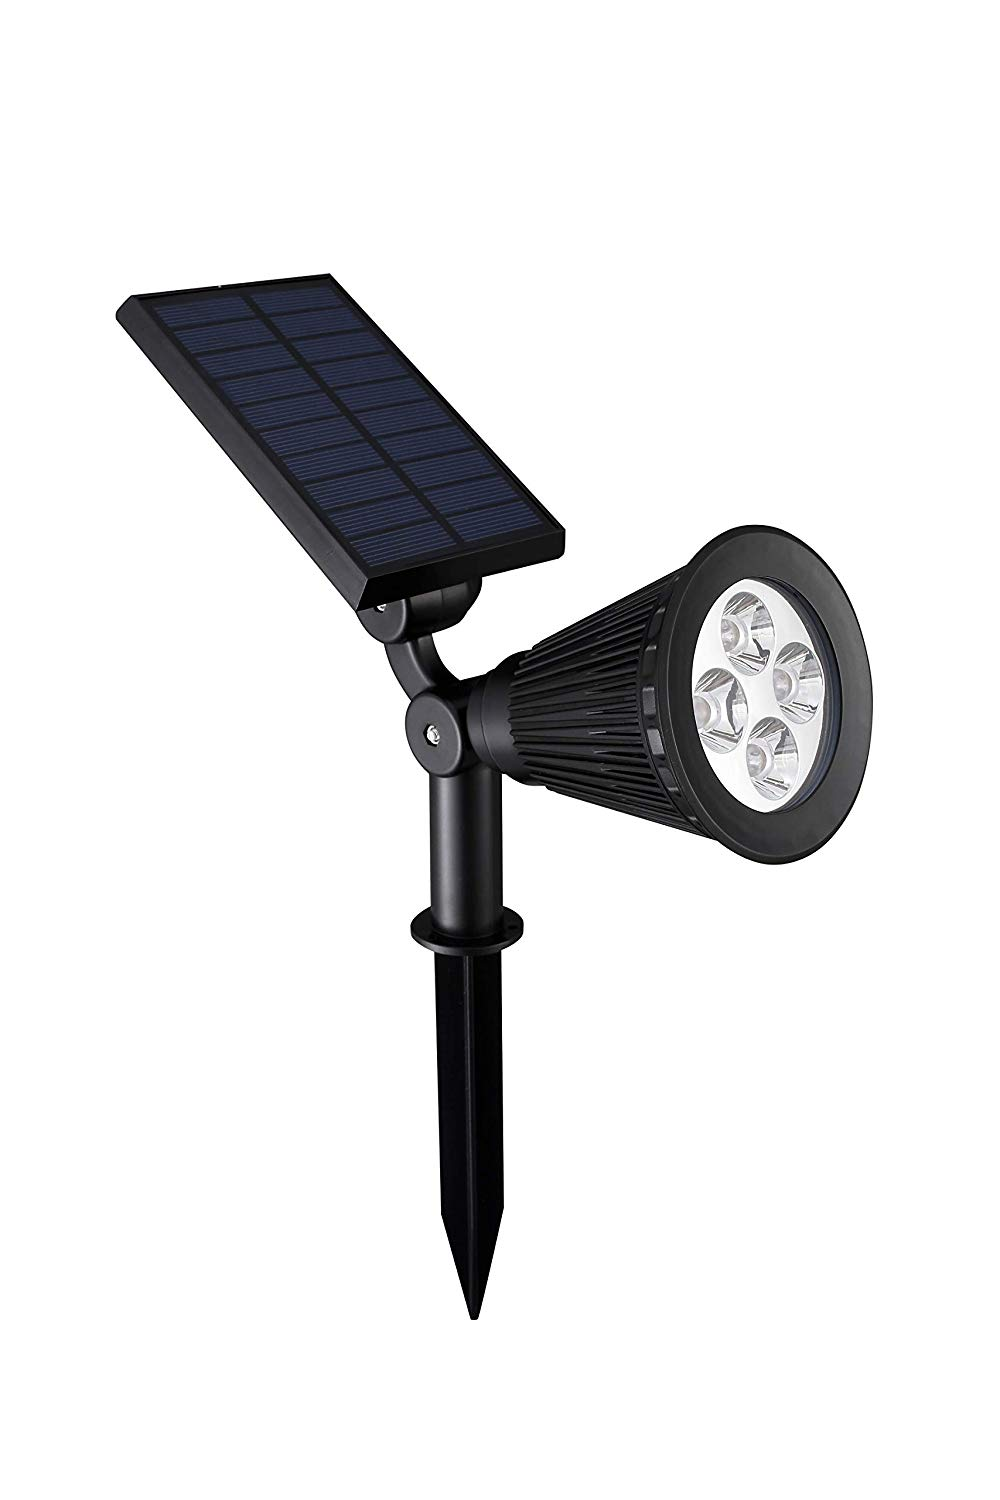 Lohasland Solar Lights Outdoor 2-in-1 Waterproof Landscape Lighting Spotlight Wall Light Auto On/Off for Yard Garden Driveway Pathway Pool White Light One Pack(Free Running Armband Included)